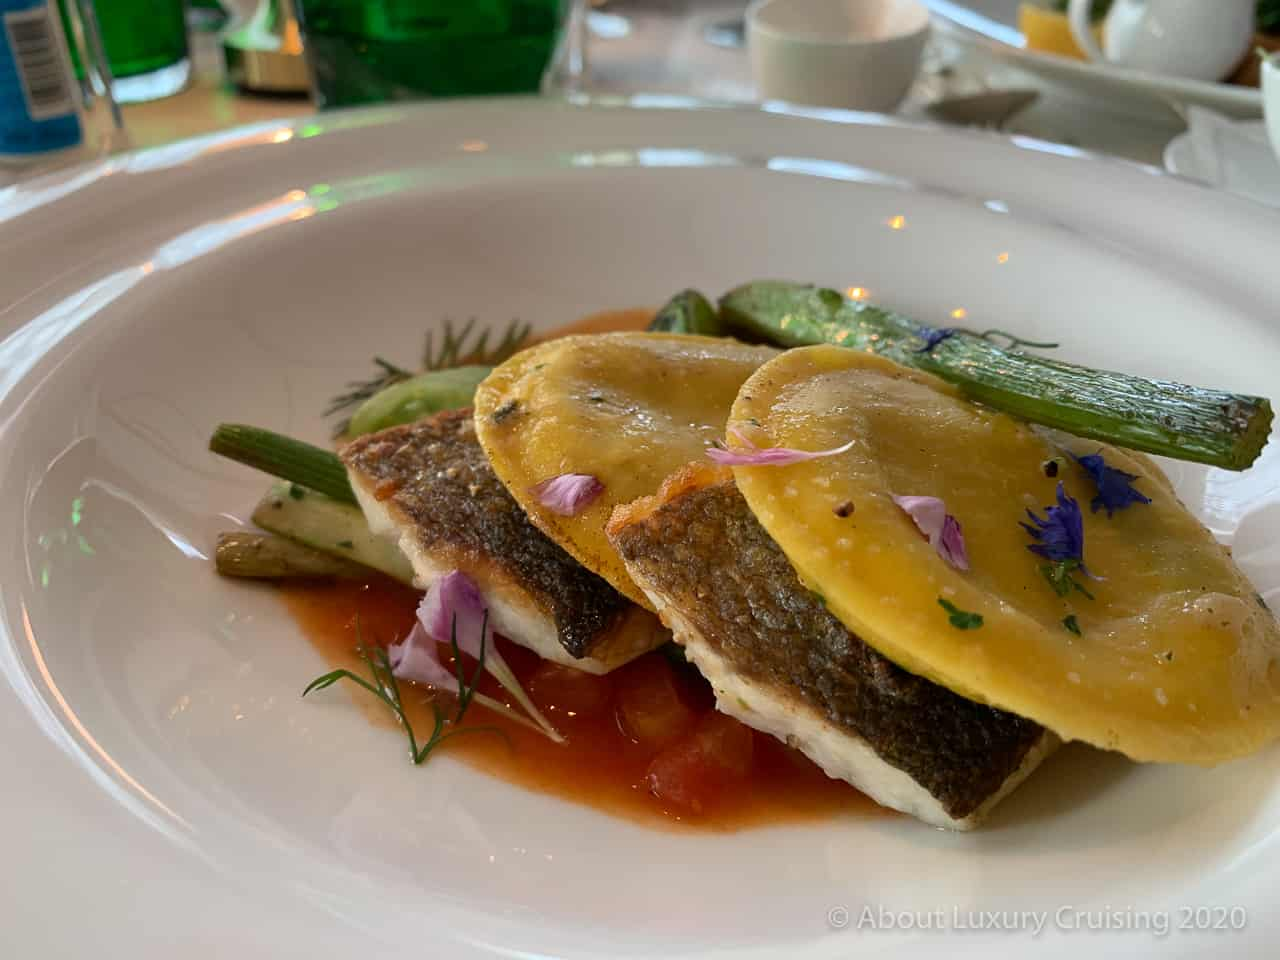 River Cruising Guide Dining Options 2